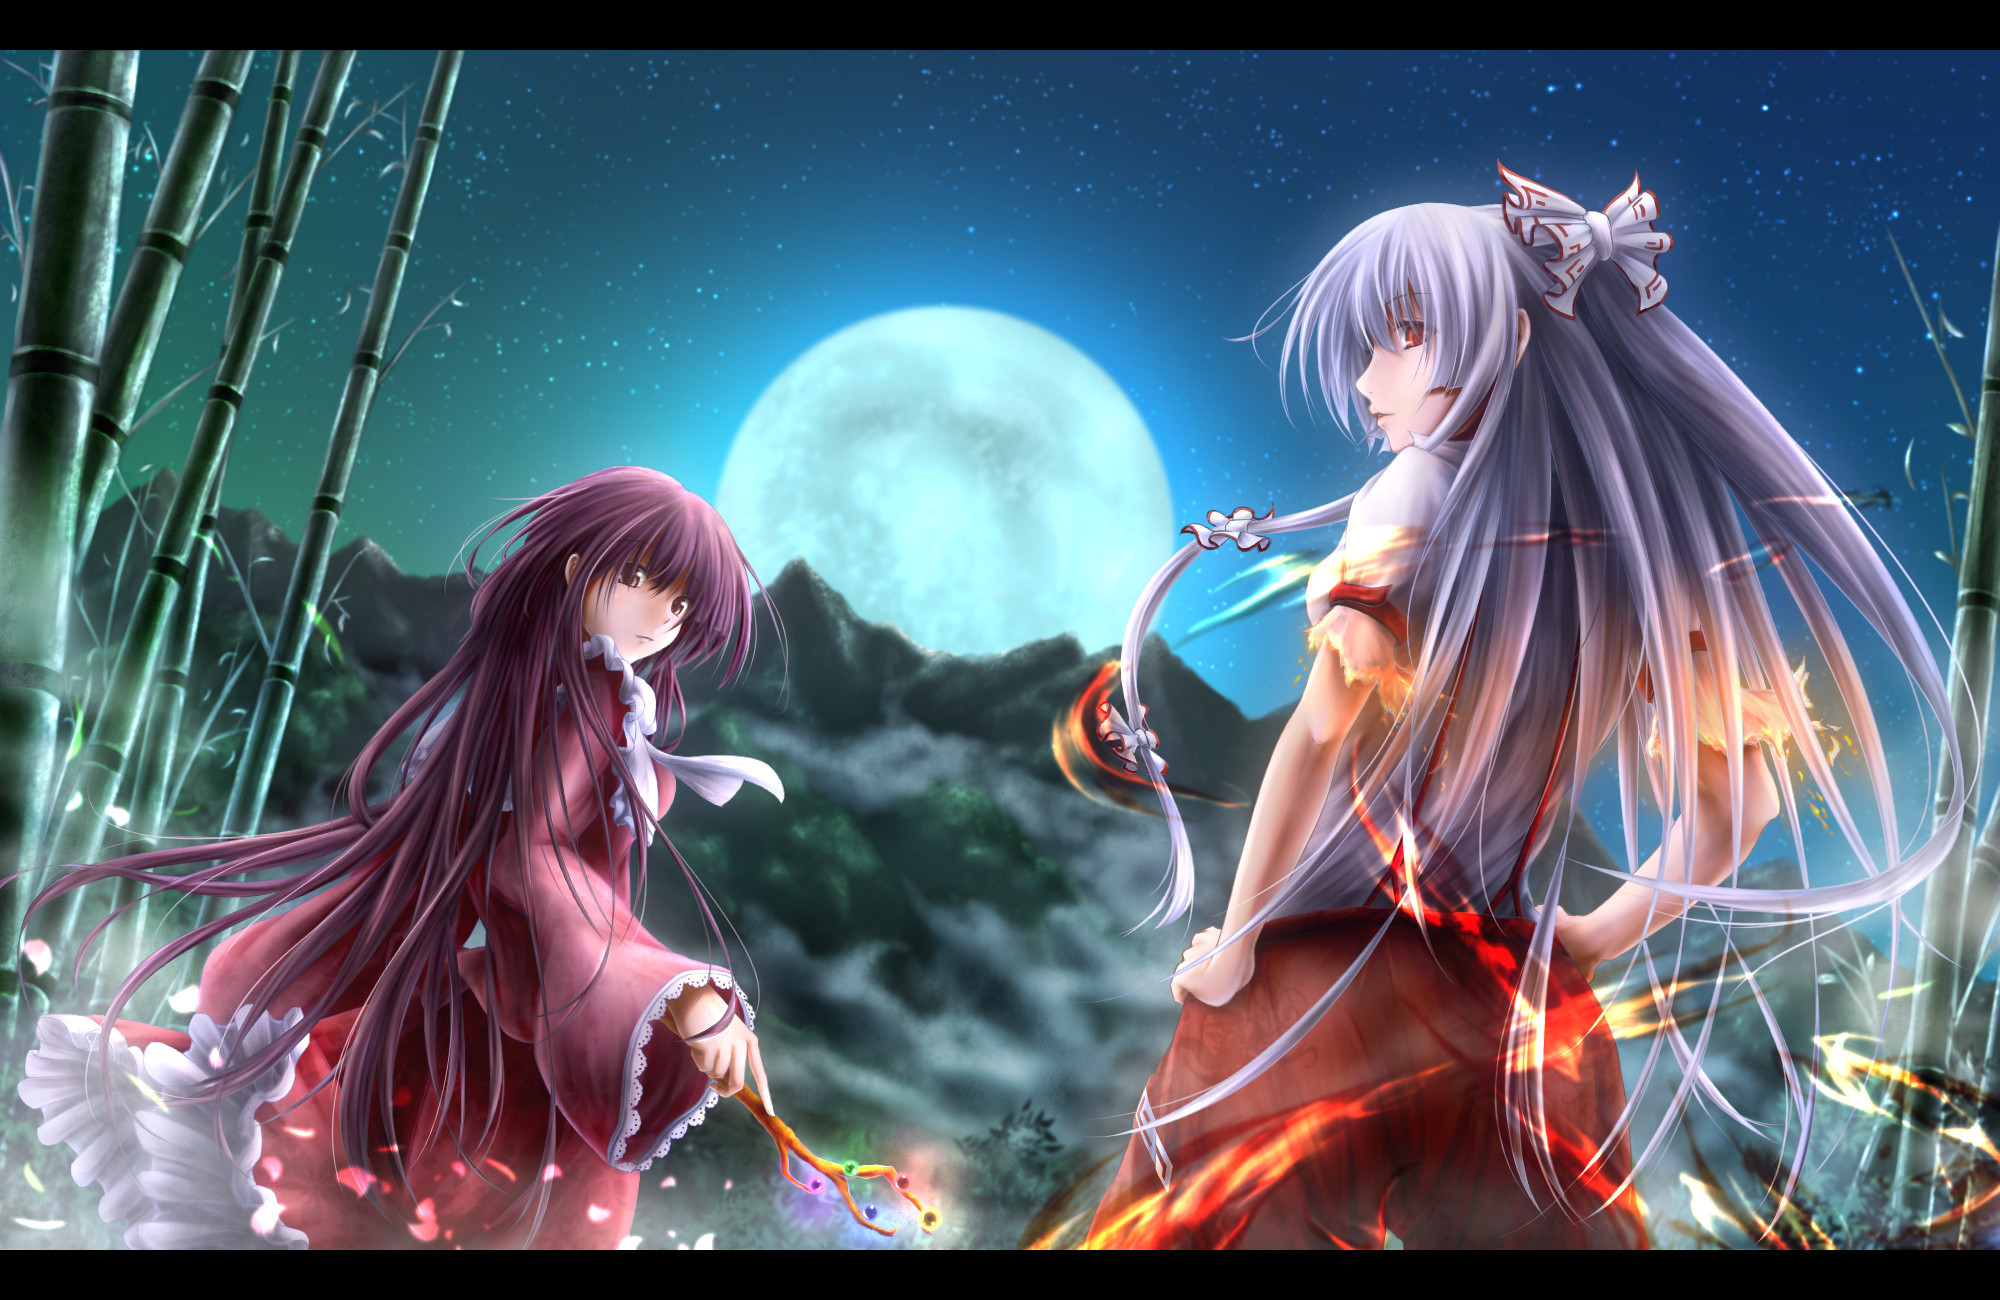 125 Touhou wallpapers; all are in good taste, most are epic. If you're  looking for lewd pictures keep hitting →